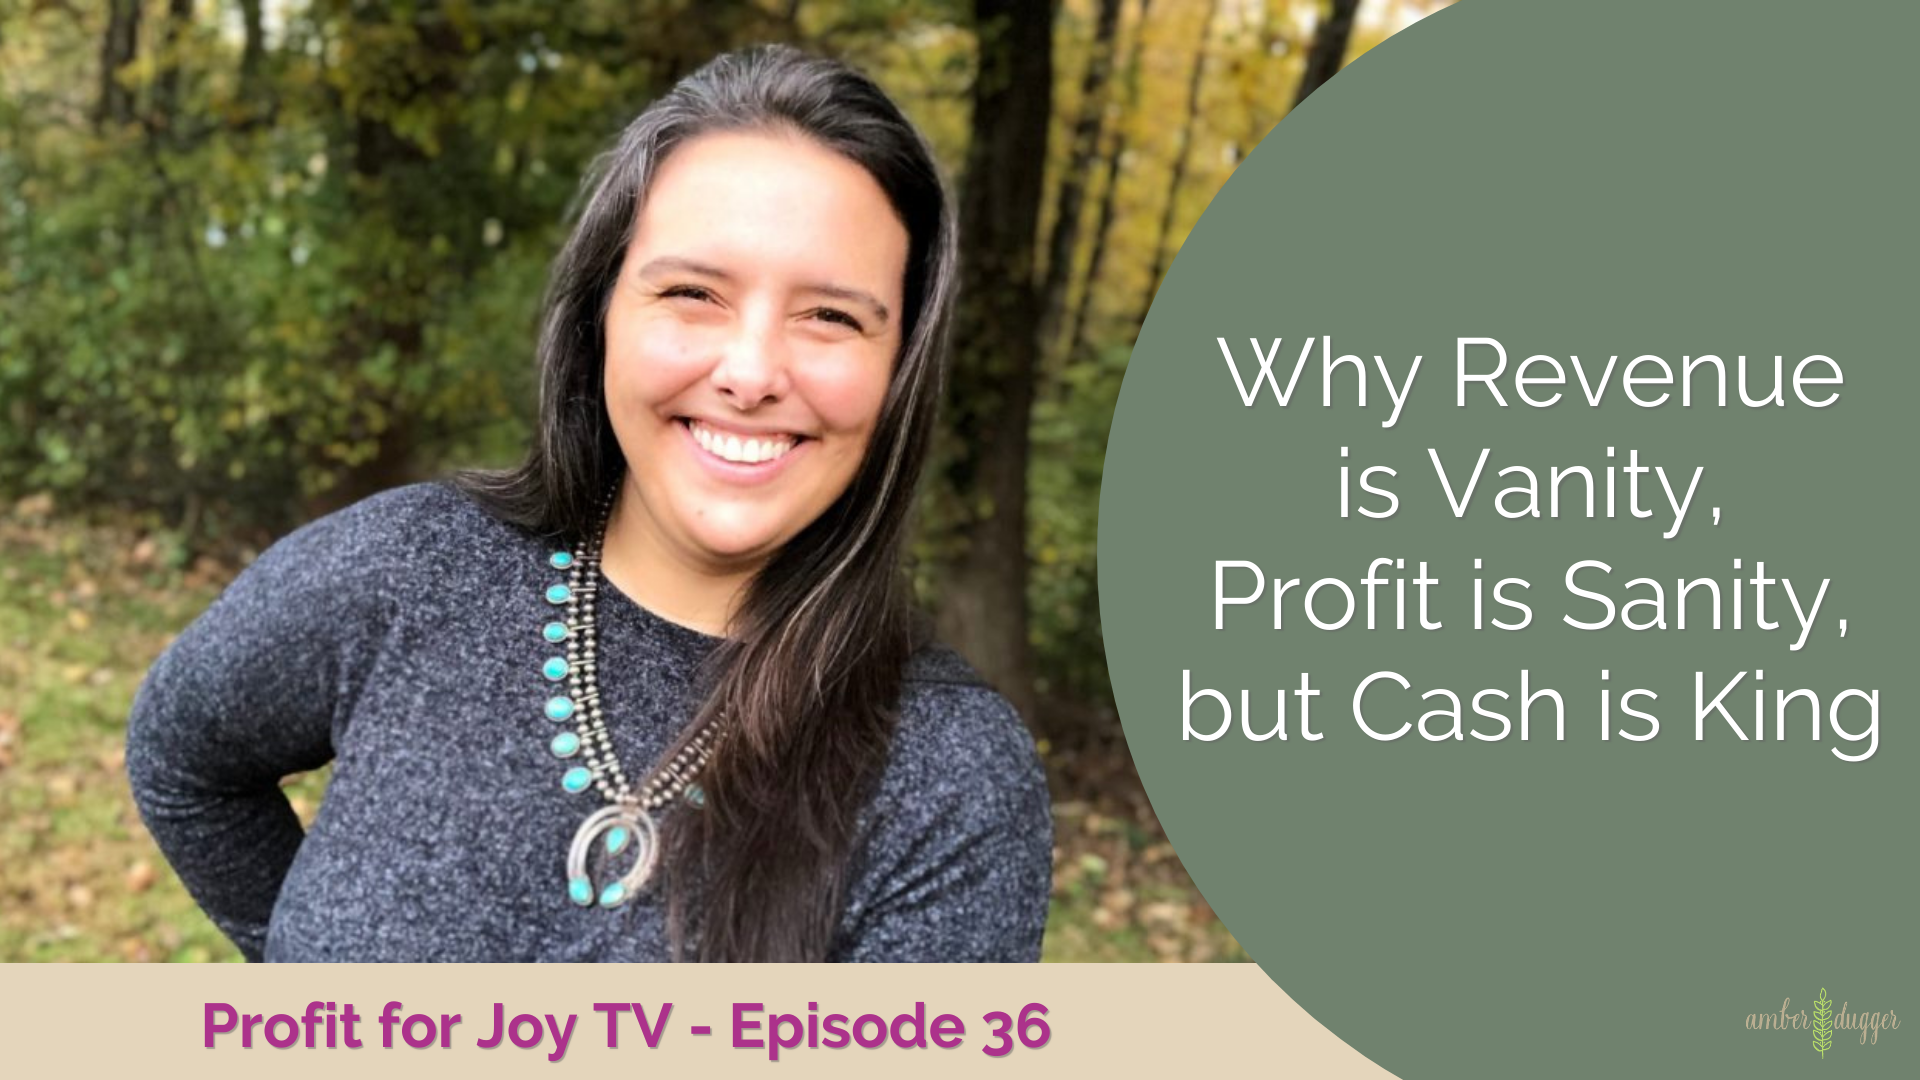 Why Revenue is Vanity, Profit is Sanity, but Cash is King